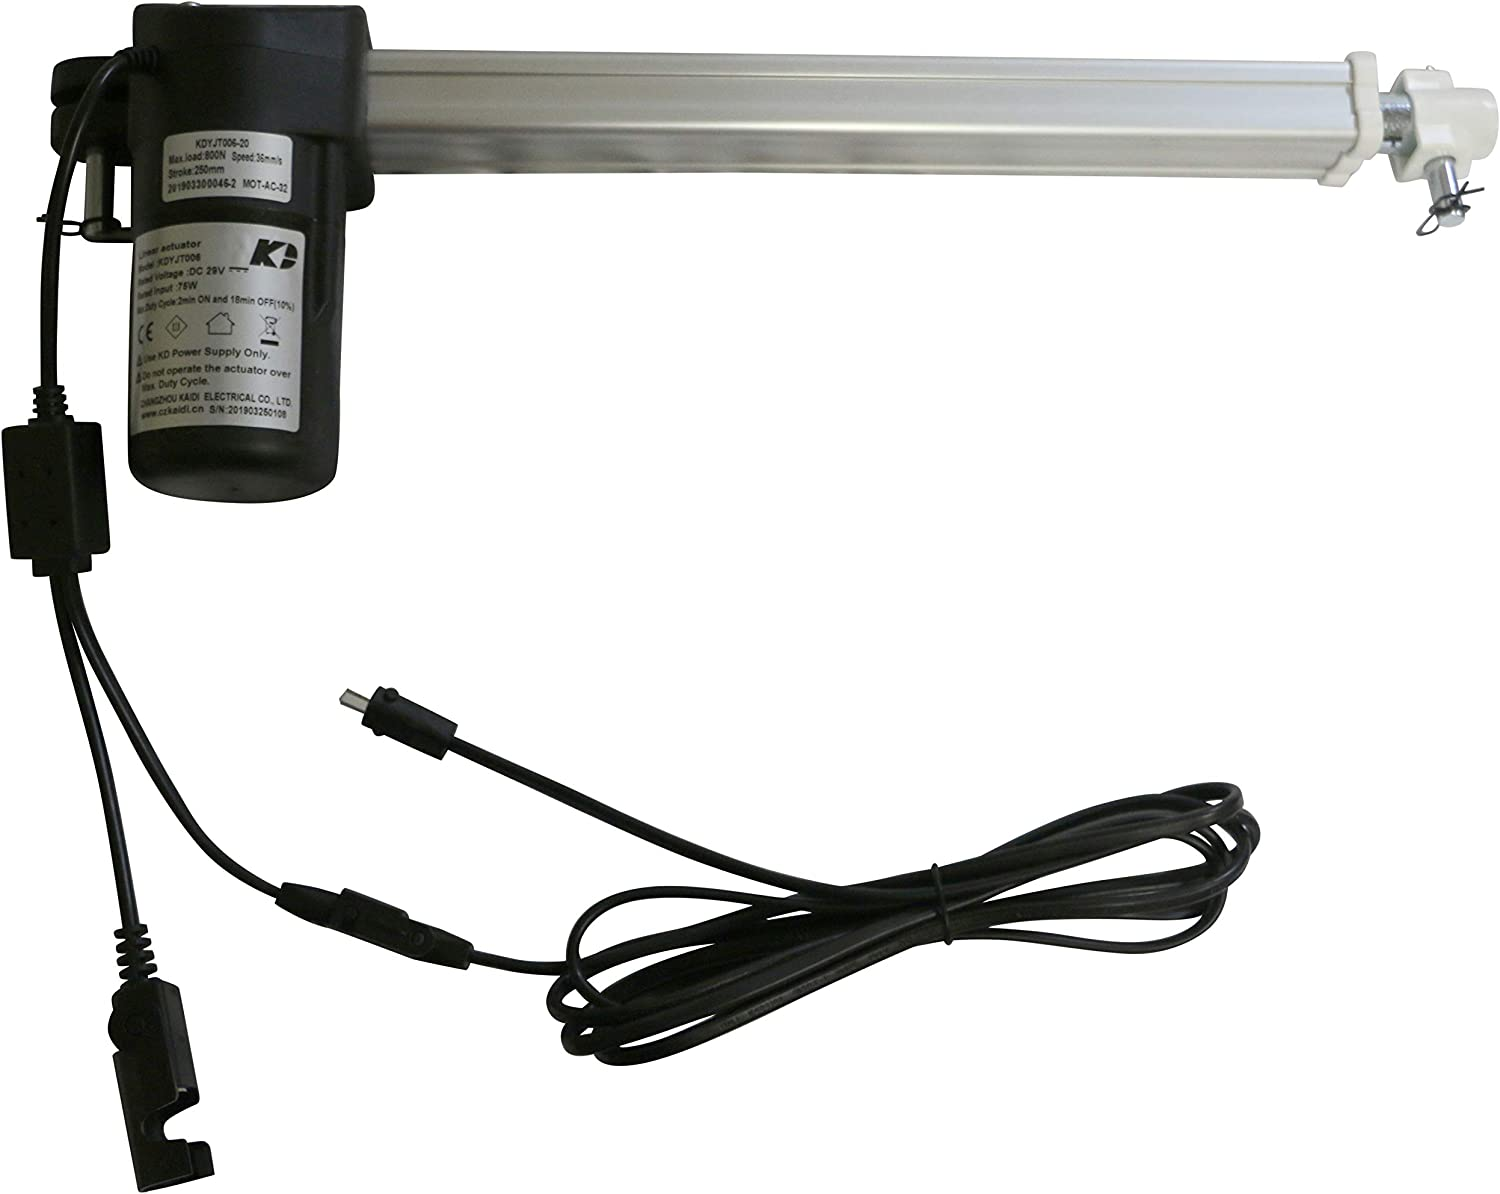 KD Kaidi Replacement Motor for Lift Chair and Recliner KDYJT006-20